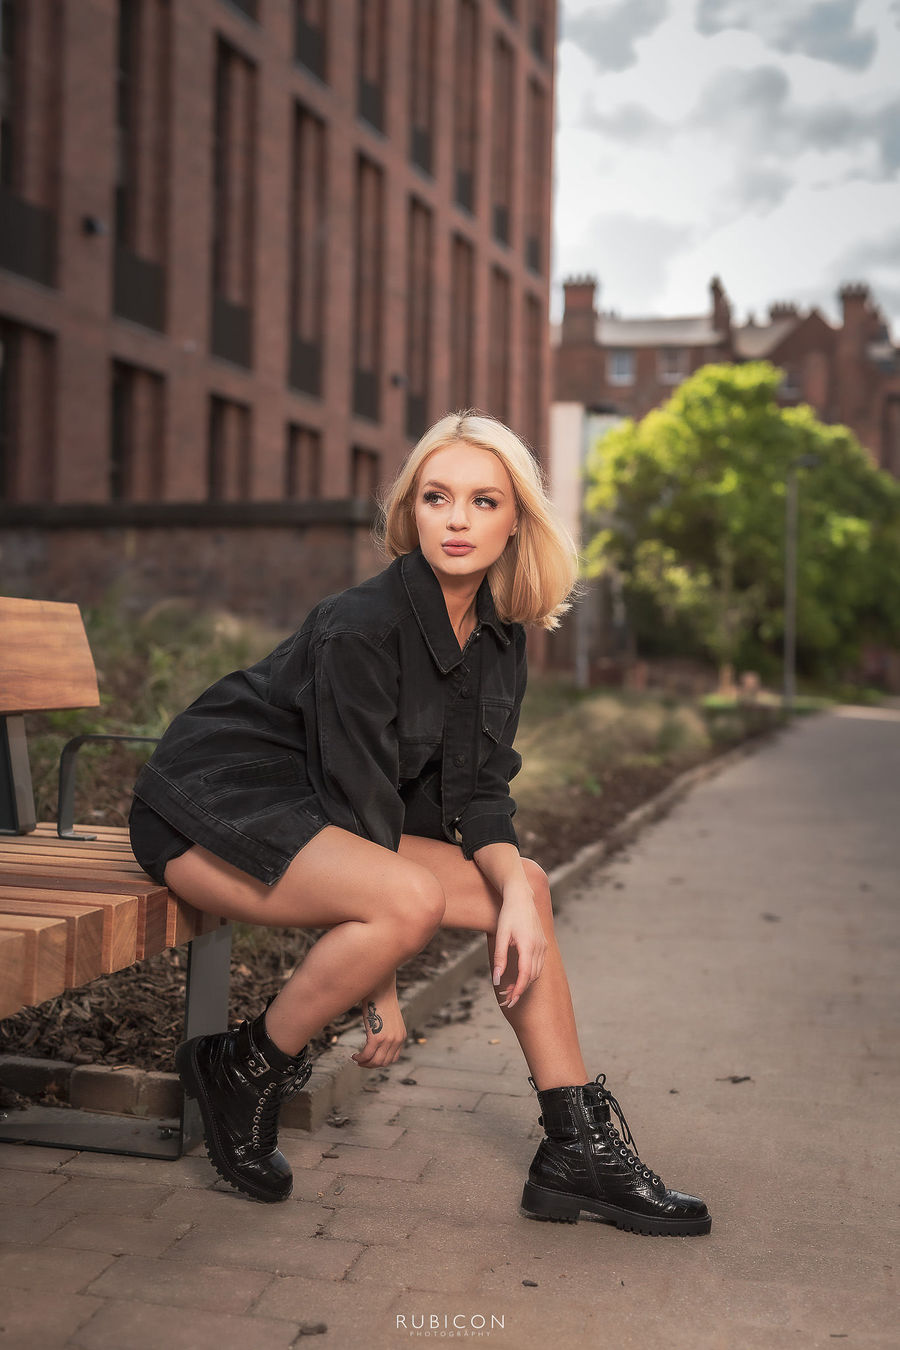 Photography by RUBICON PHOTOGRAPHY, Model Katey Model / Uploaded 23rd September 2020 @ 07:58 PM